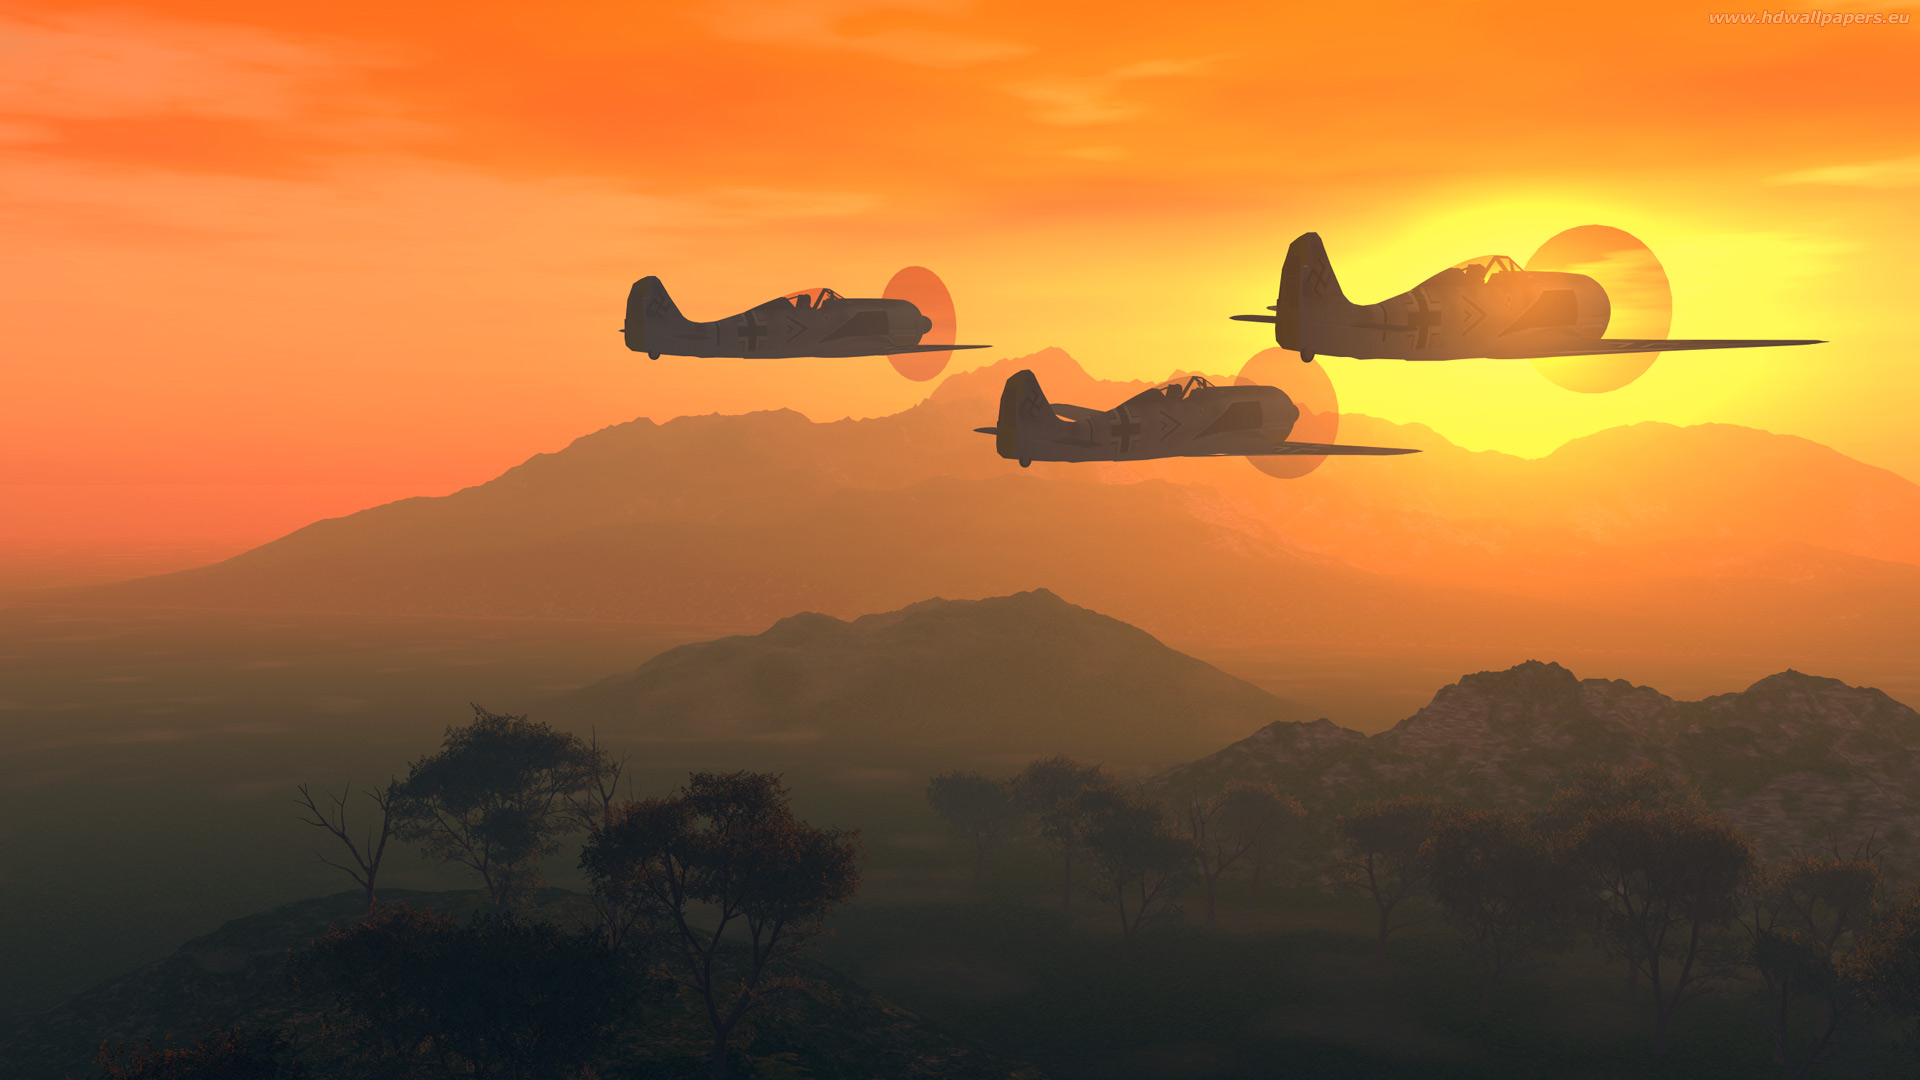 aeroplanes picture spitfire wallpapers 1920x1080 in jungle